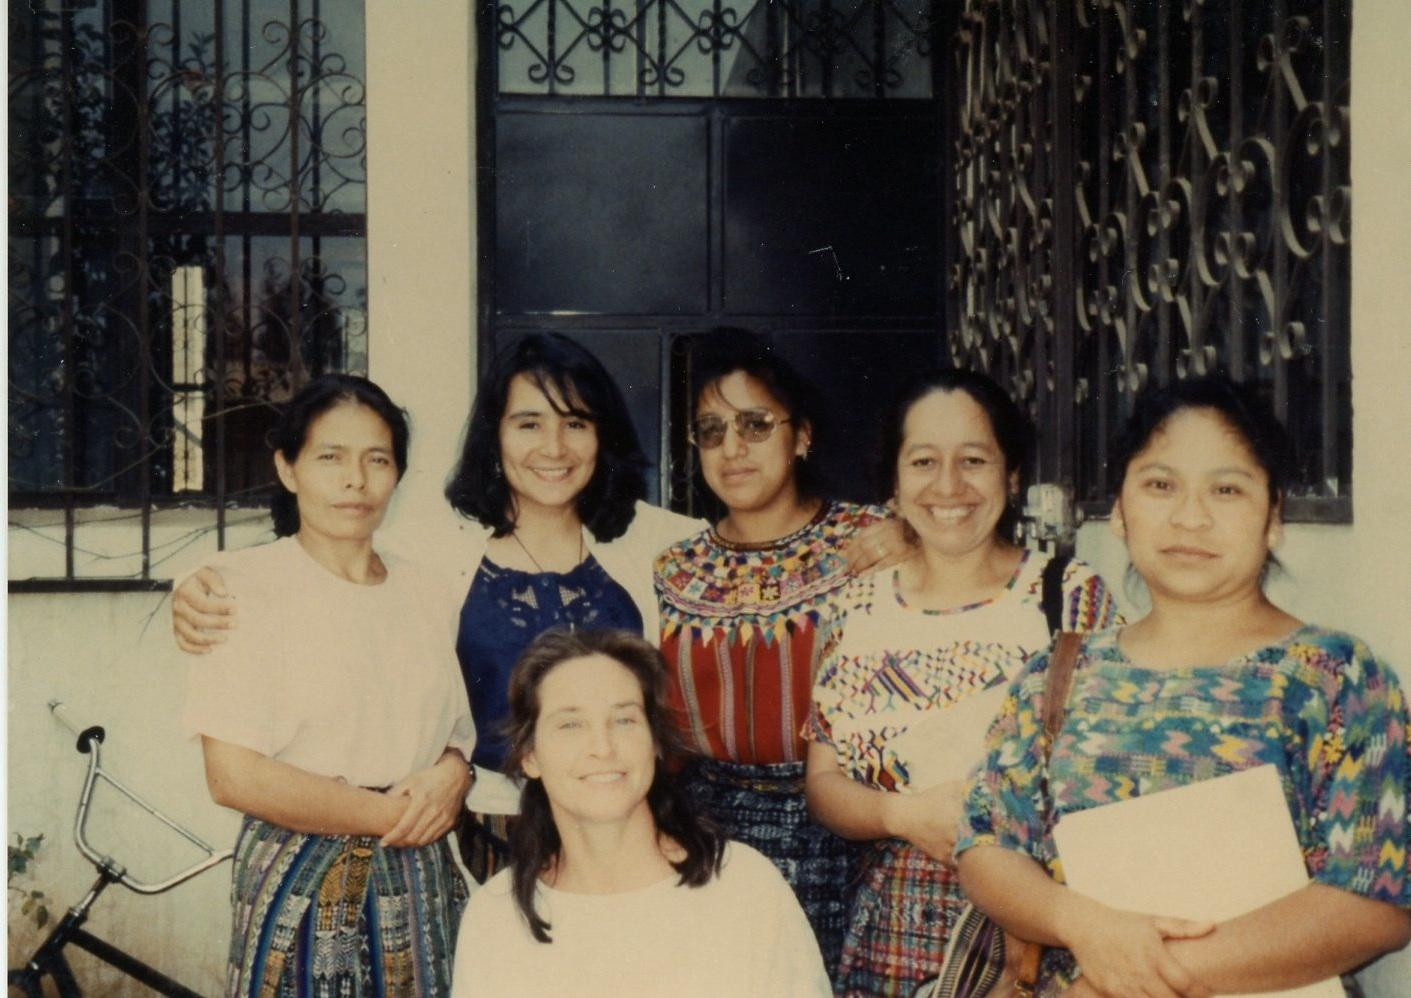 With colleagues from ASECSA team involved in training of Community Health Workers on sexual and reproductive health, Guatemala, 1998.